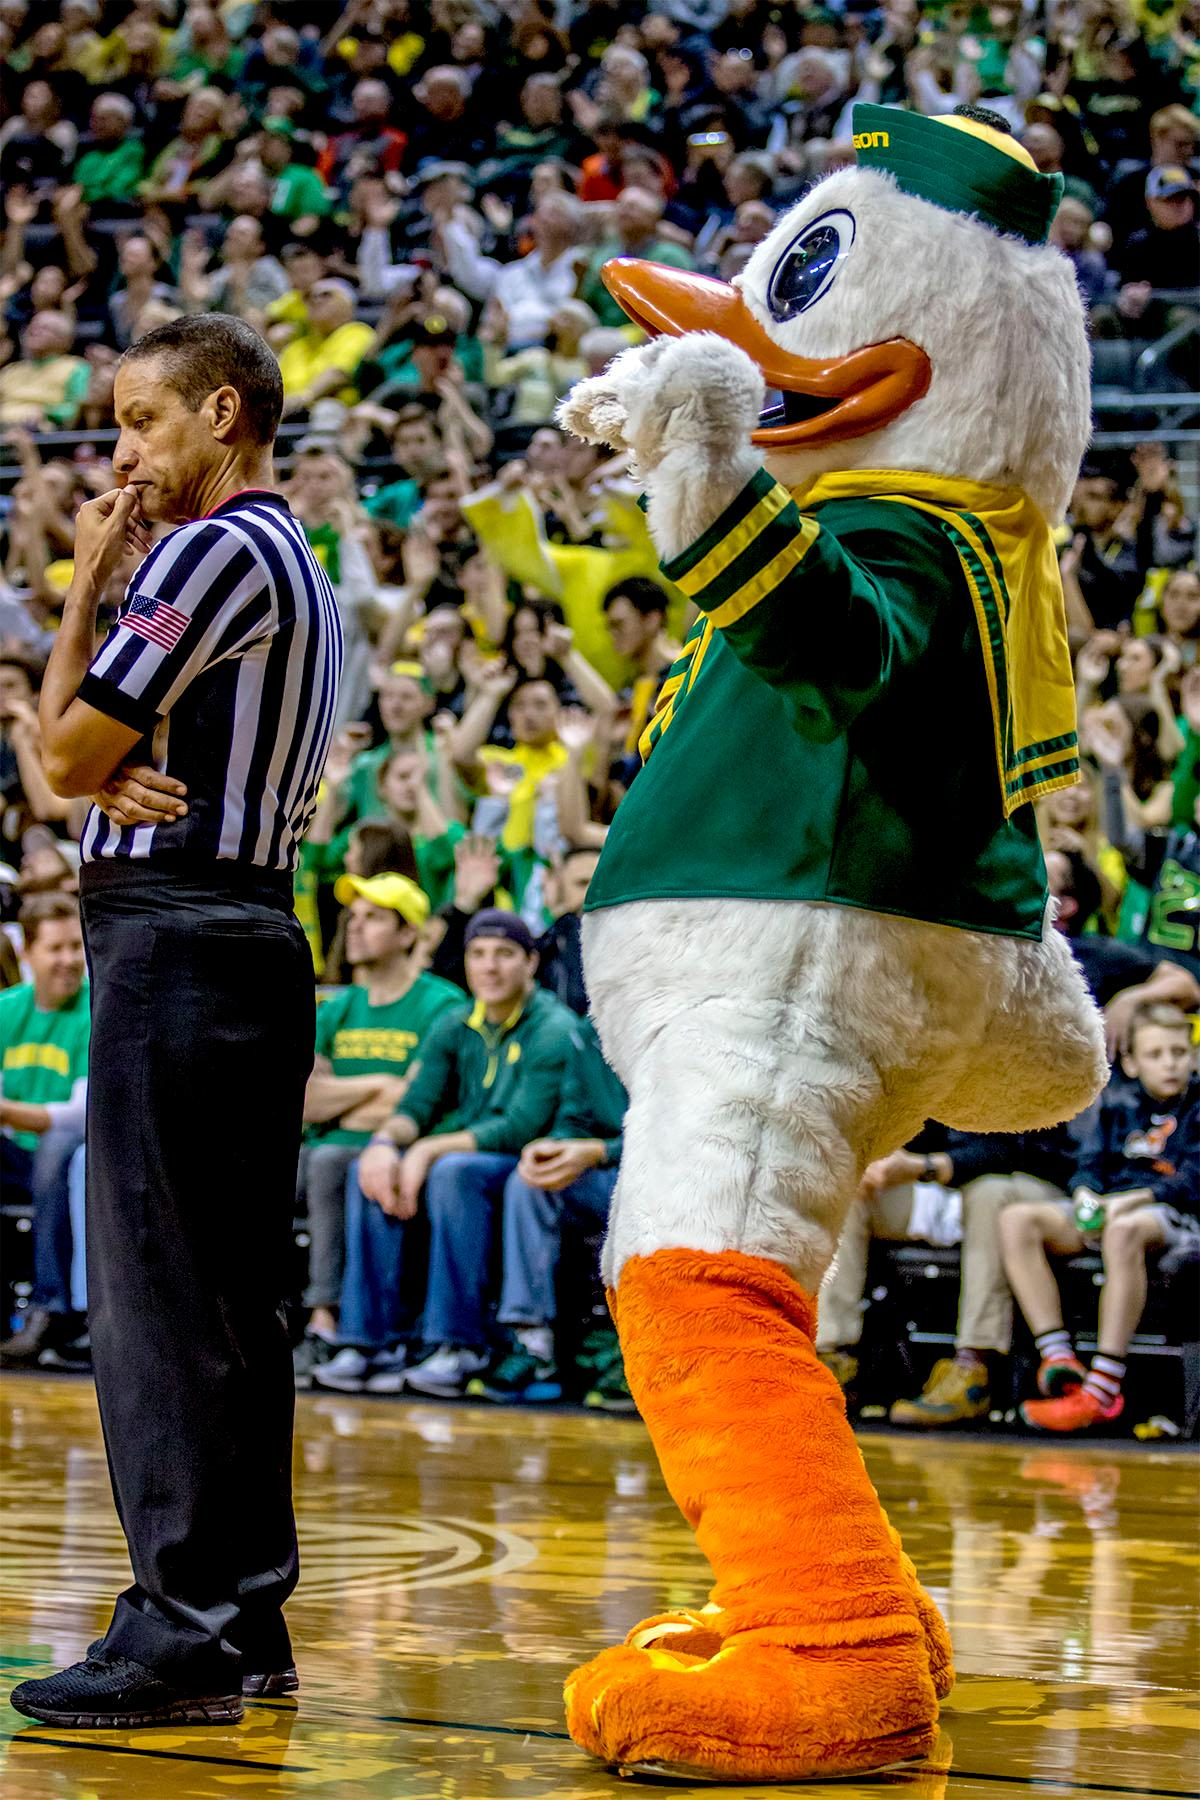 The Duck dances behind a referee. The Ducks defeated the Beavers in the civil war game, 66-57, at Matthew Knight Arena on Saturday night. Elijah Brown scored a game high of 20 points with 18 of the points coming in the first half, Paul White added 17 points. The Ducks are now 14-7 overall and 4-4 in conference play. The Ducks will next face California on Thursday Feb. 1 at 6:00 p.m. Photo by August Frank, Oregon News Lab